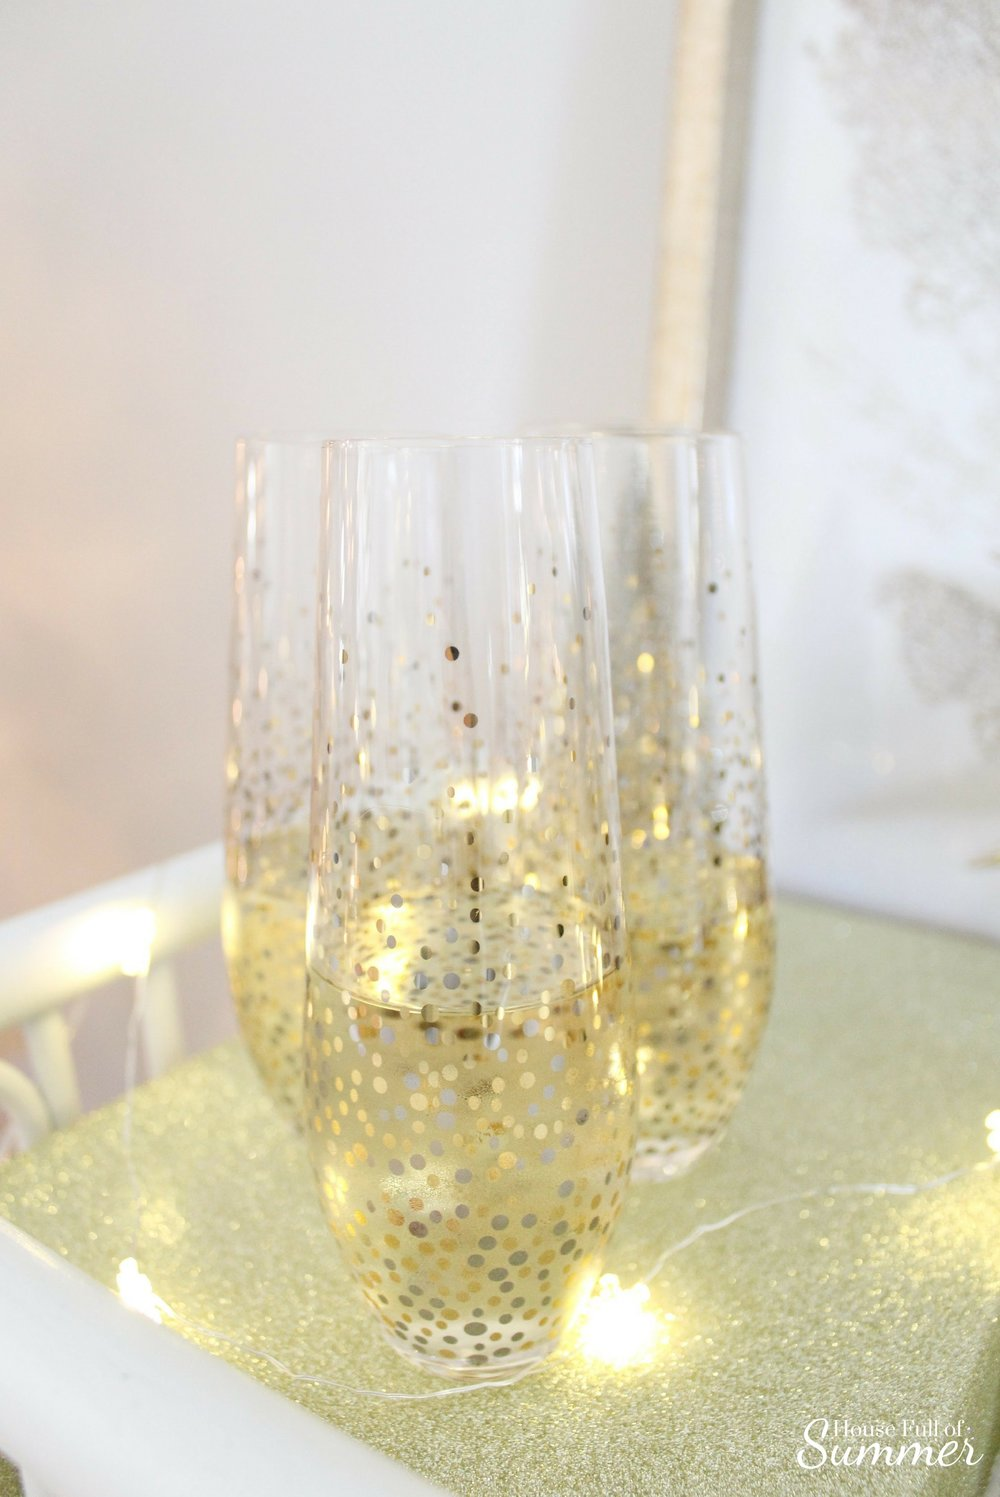 House Full of Summer | NYE Bar Cart Blog Hop - silver and gold new year's eve decor, ice bucket, champagne, coastal style, coastal NYE, holiday bar cart, fairy lights, string light ideas